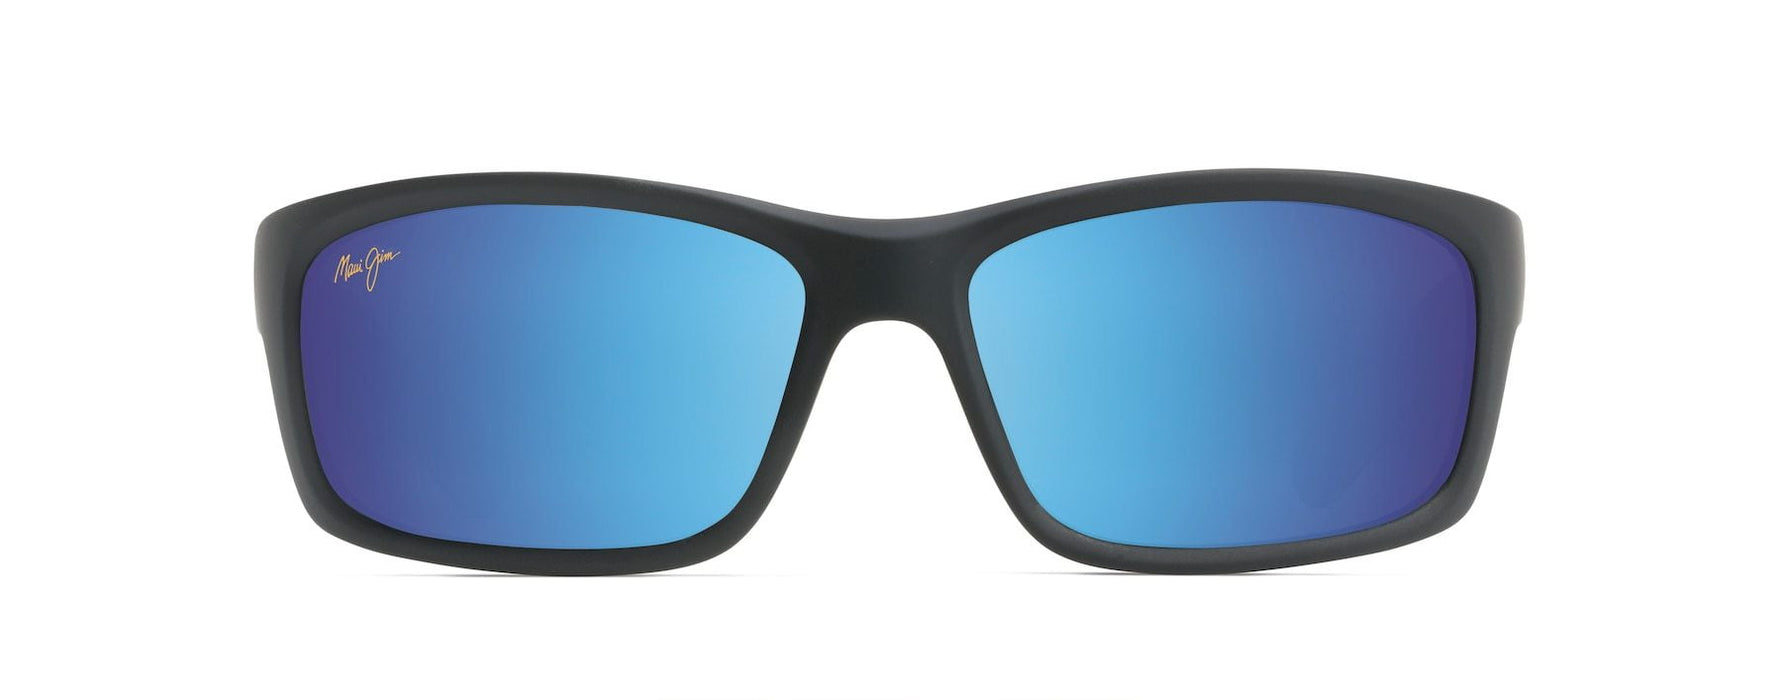 MyMaui Kanaio Coast MM766-002 Sunglasses